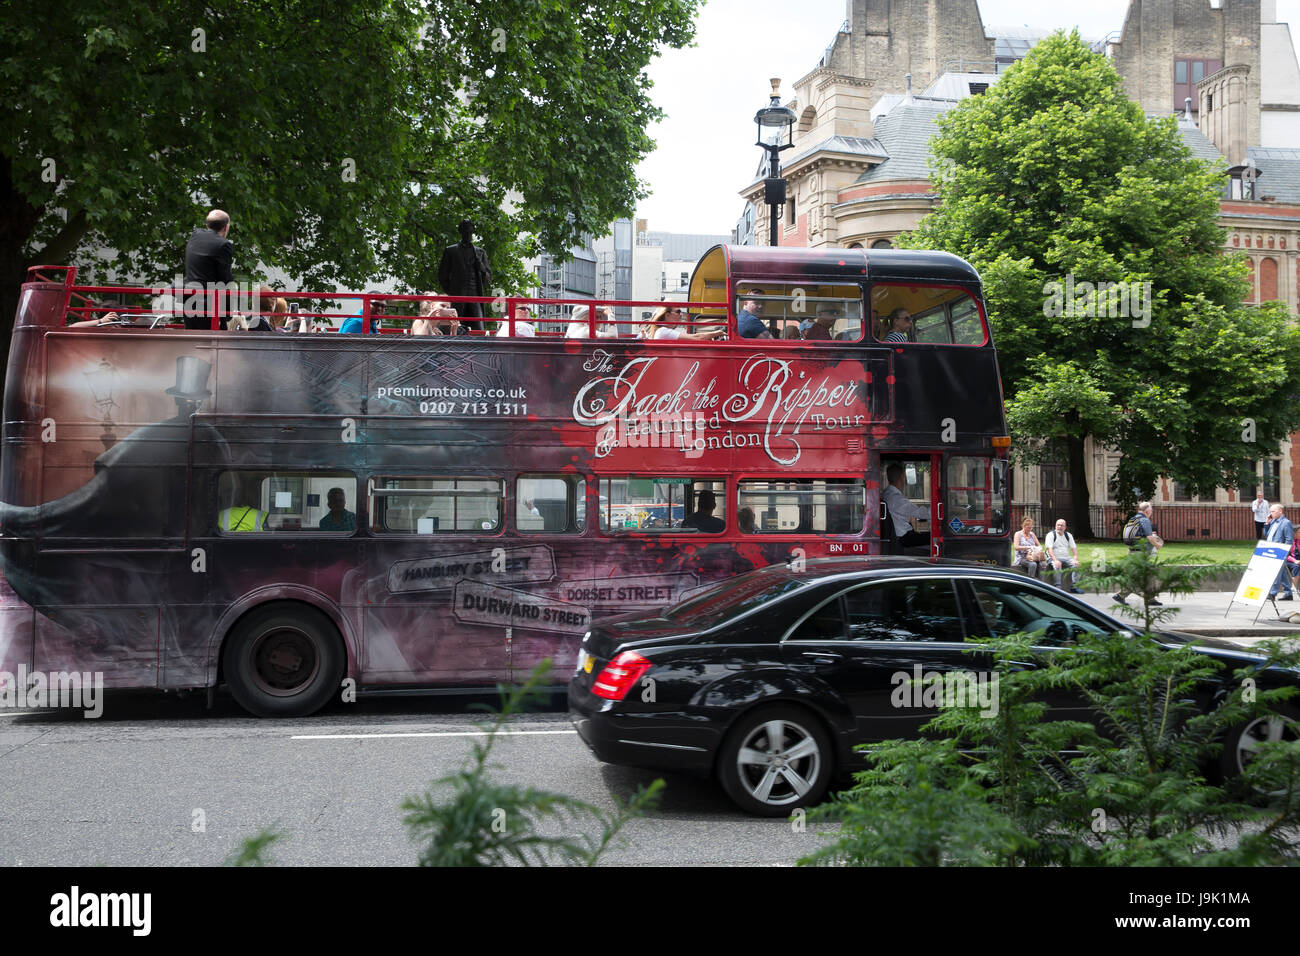 Jack The Ripper London tour Bus in London Stock Photo